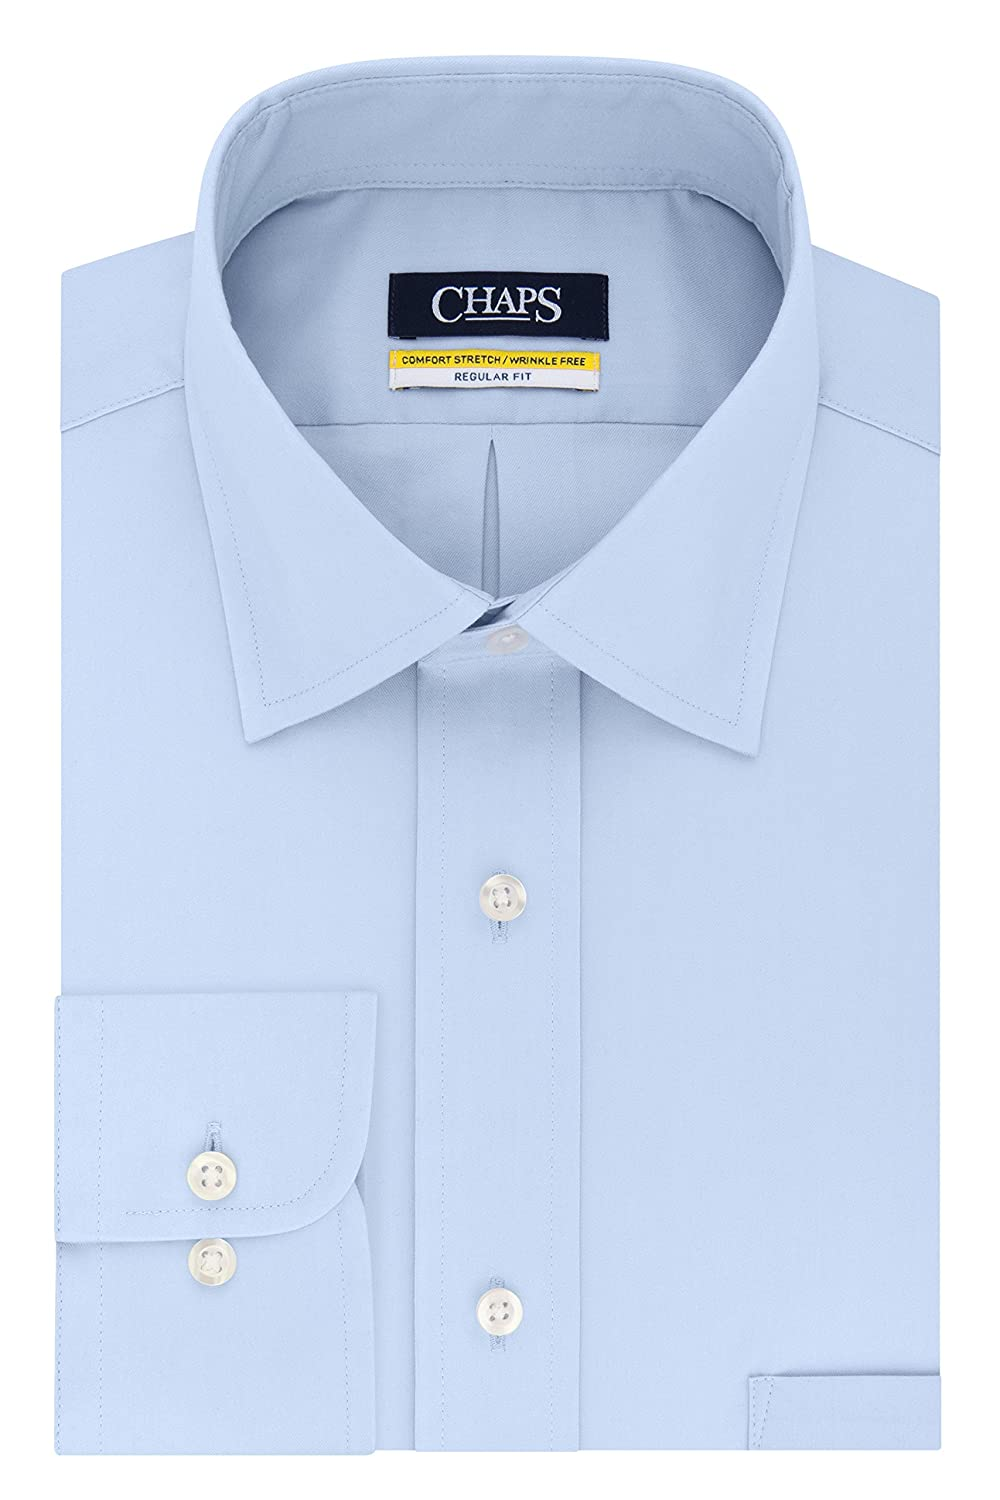 Chaps Mens Dress Shirt Regular Fit Stretch Collar Solid, Light ...